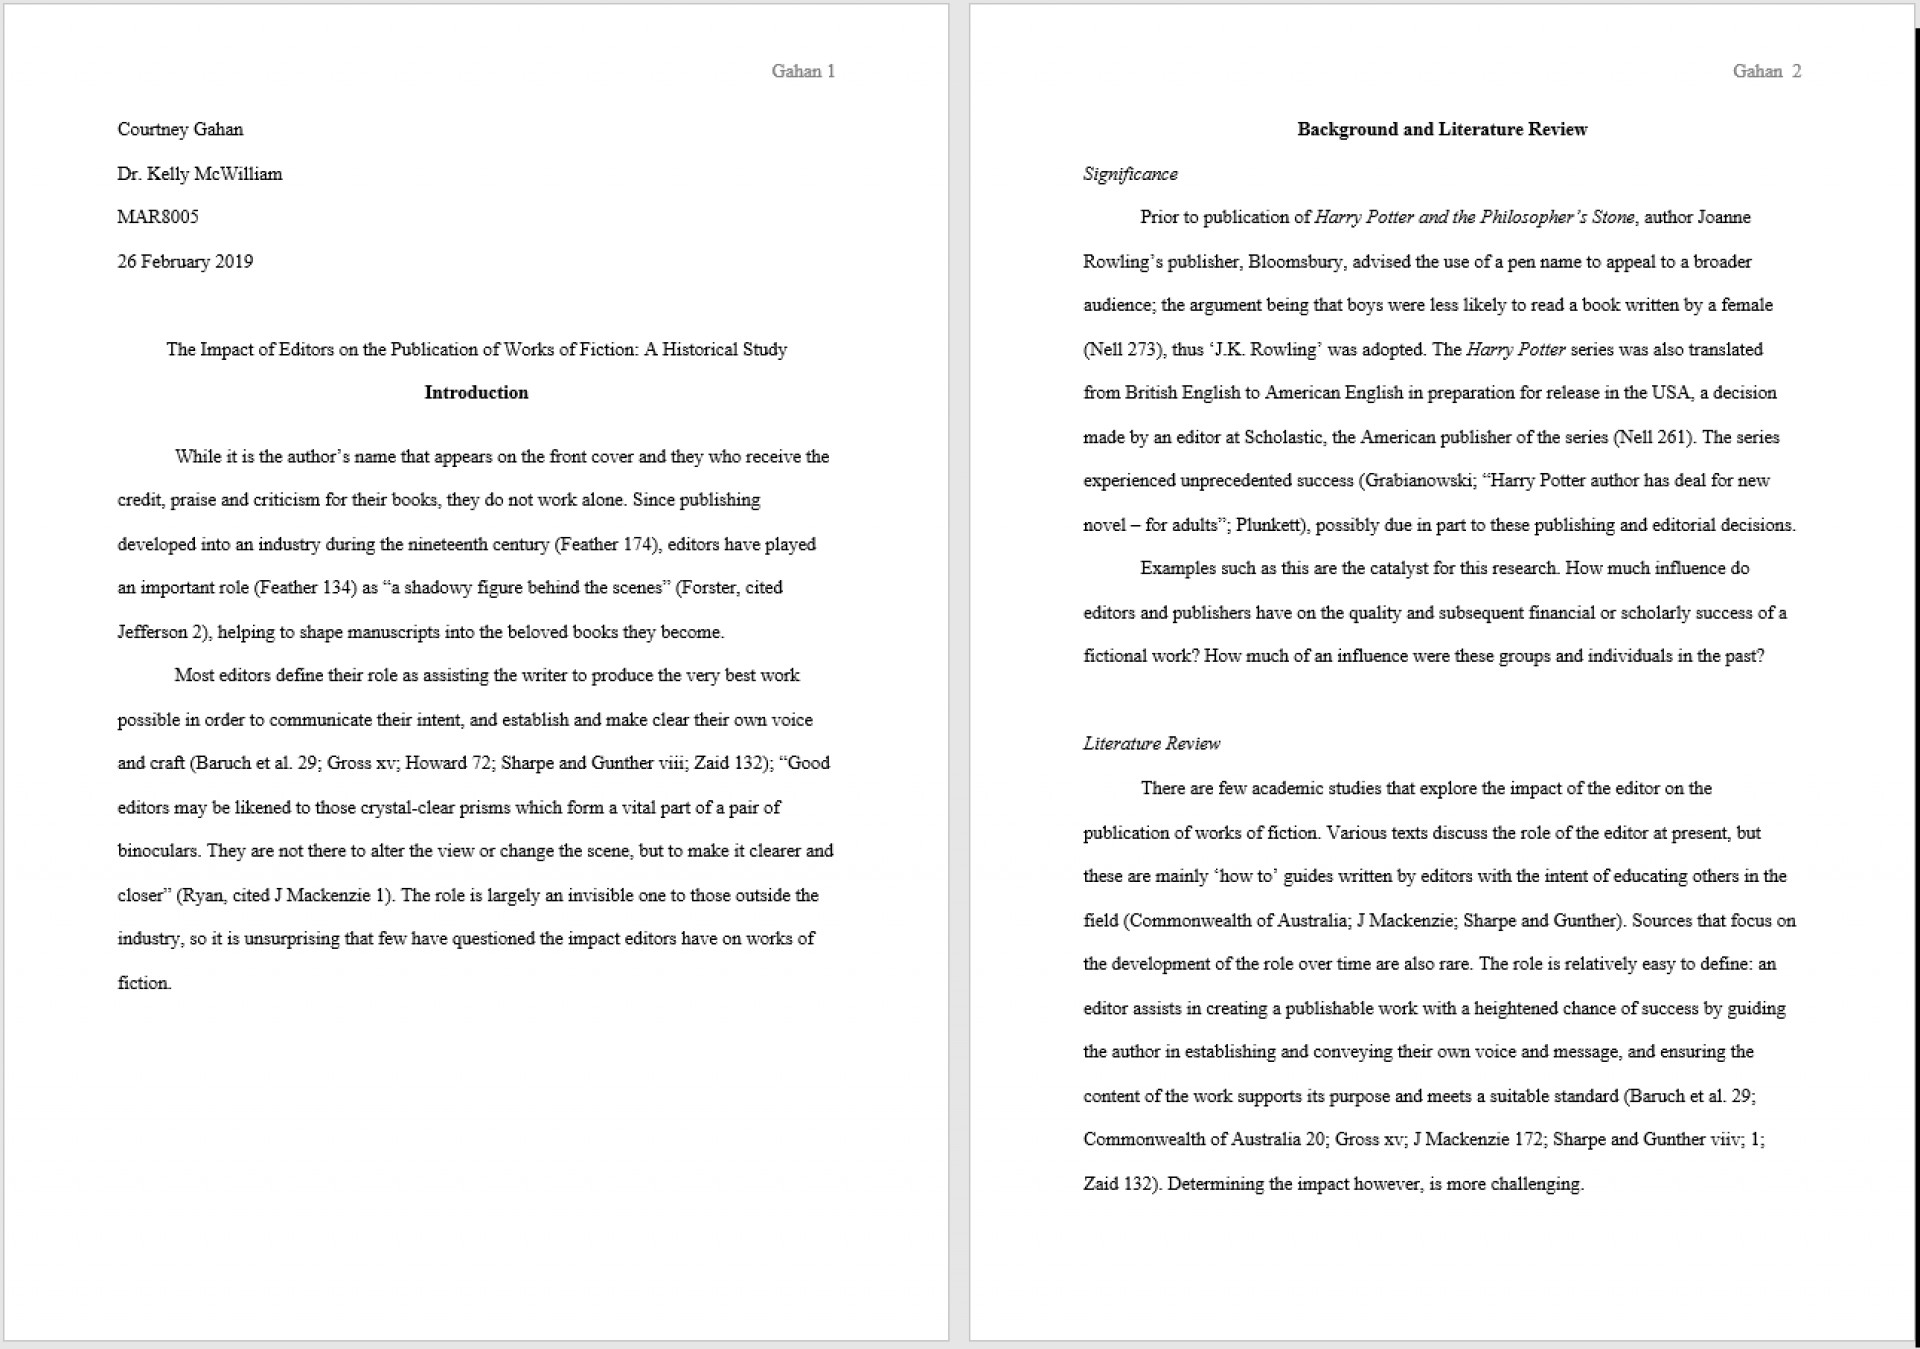 008 Research Paper Mla Sample Format For Essays And Papers Using Microsoft Word Stirring 2010 1920